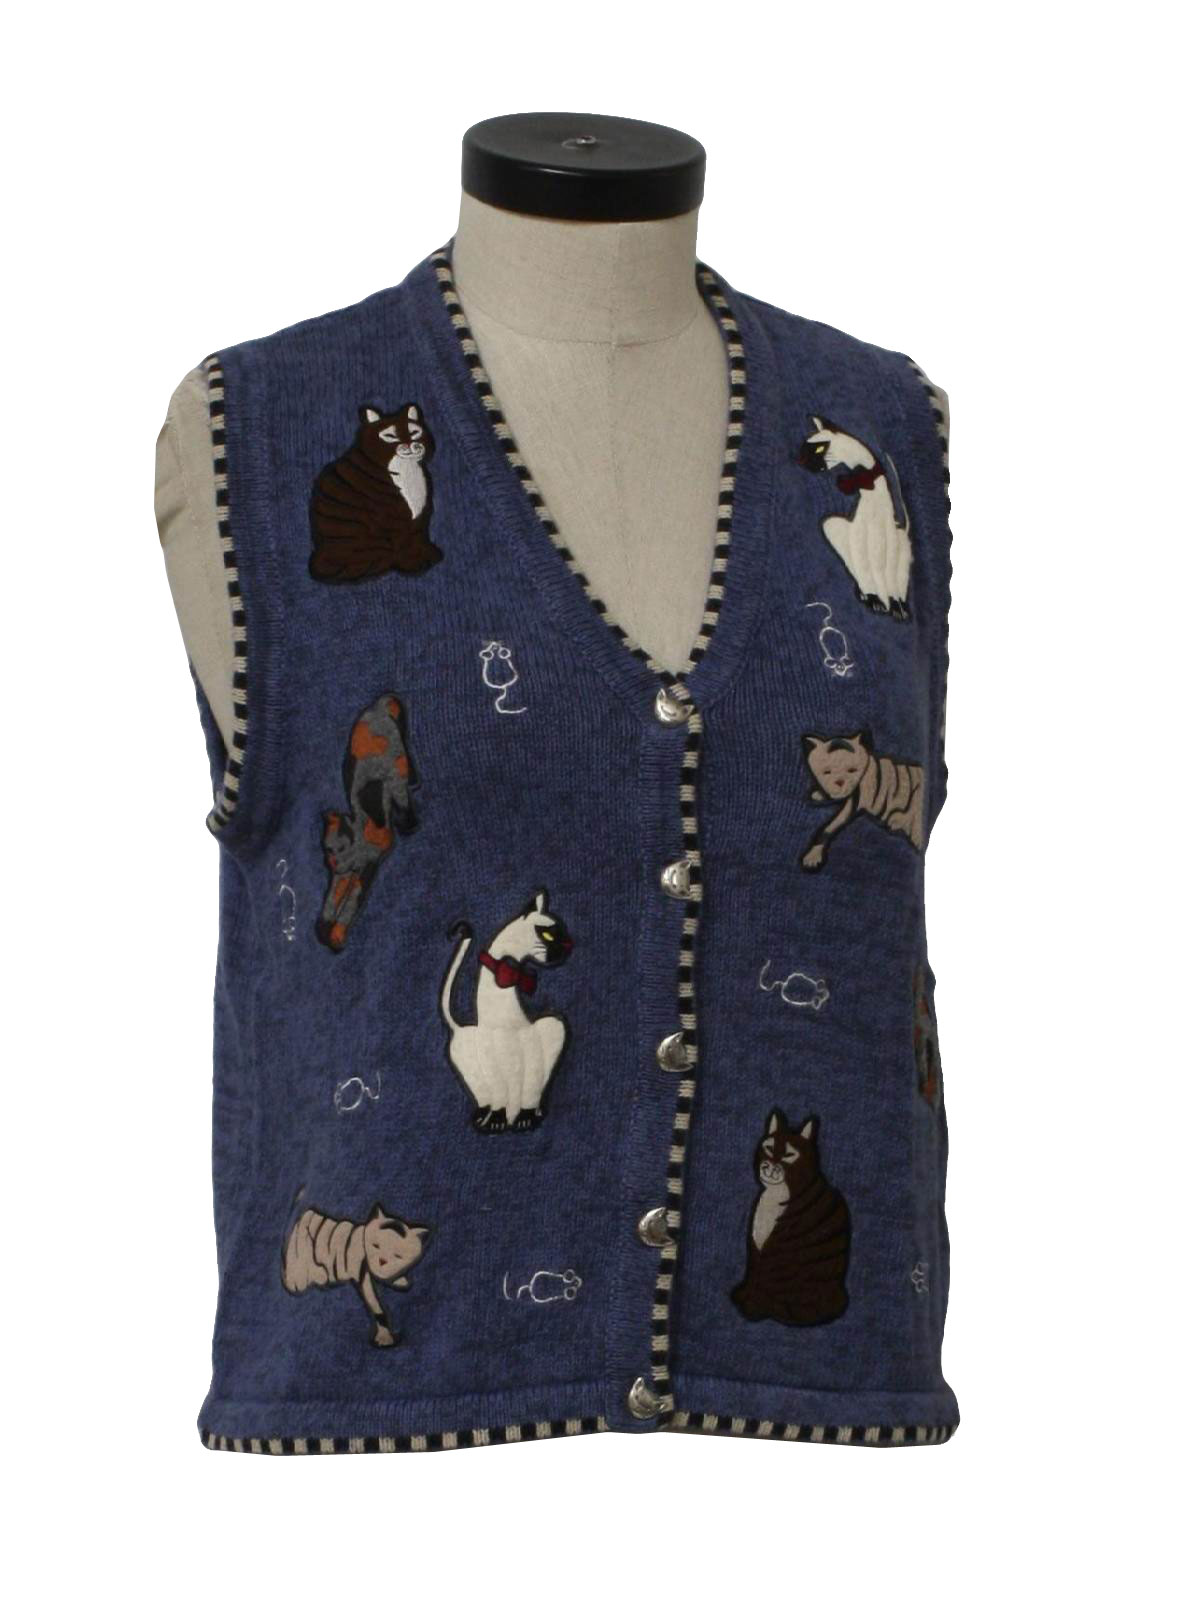 Mens Sweater Vests